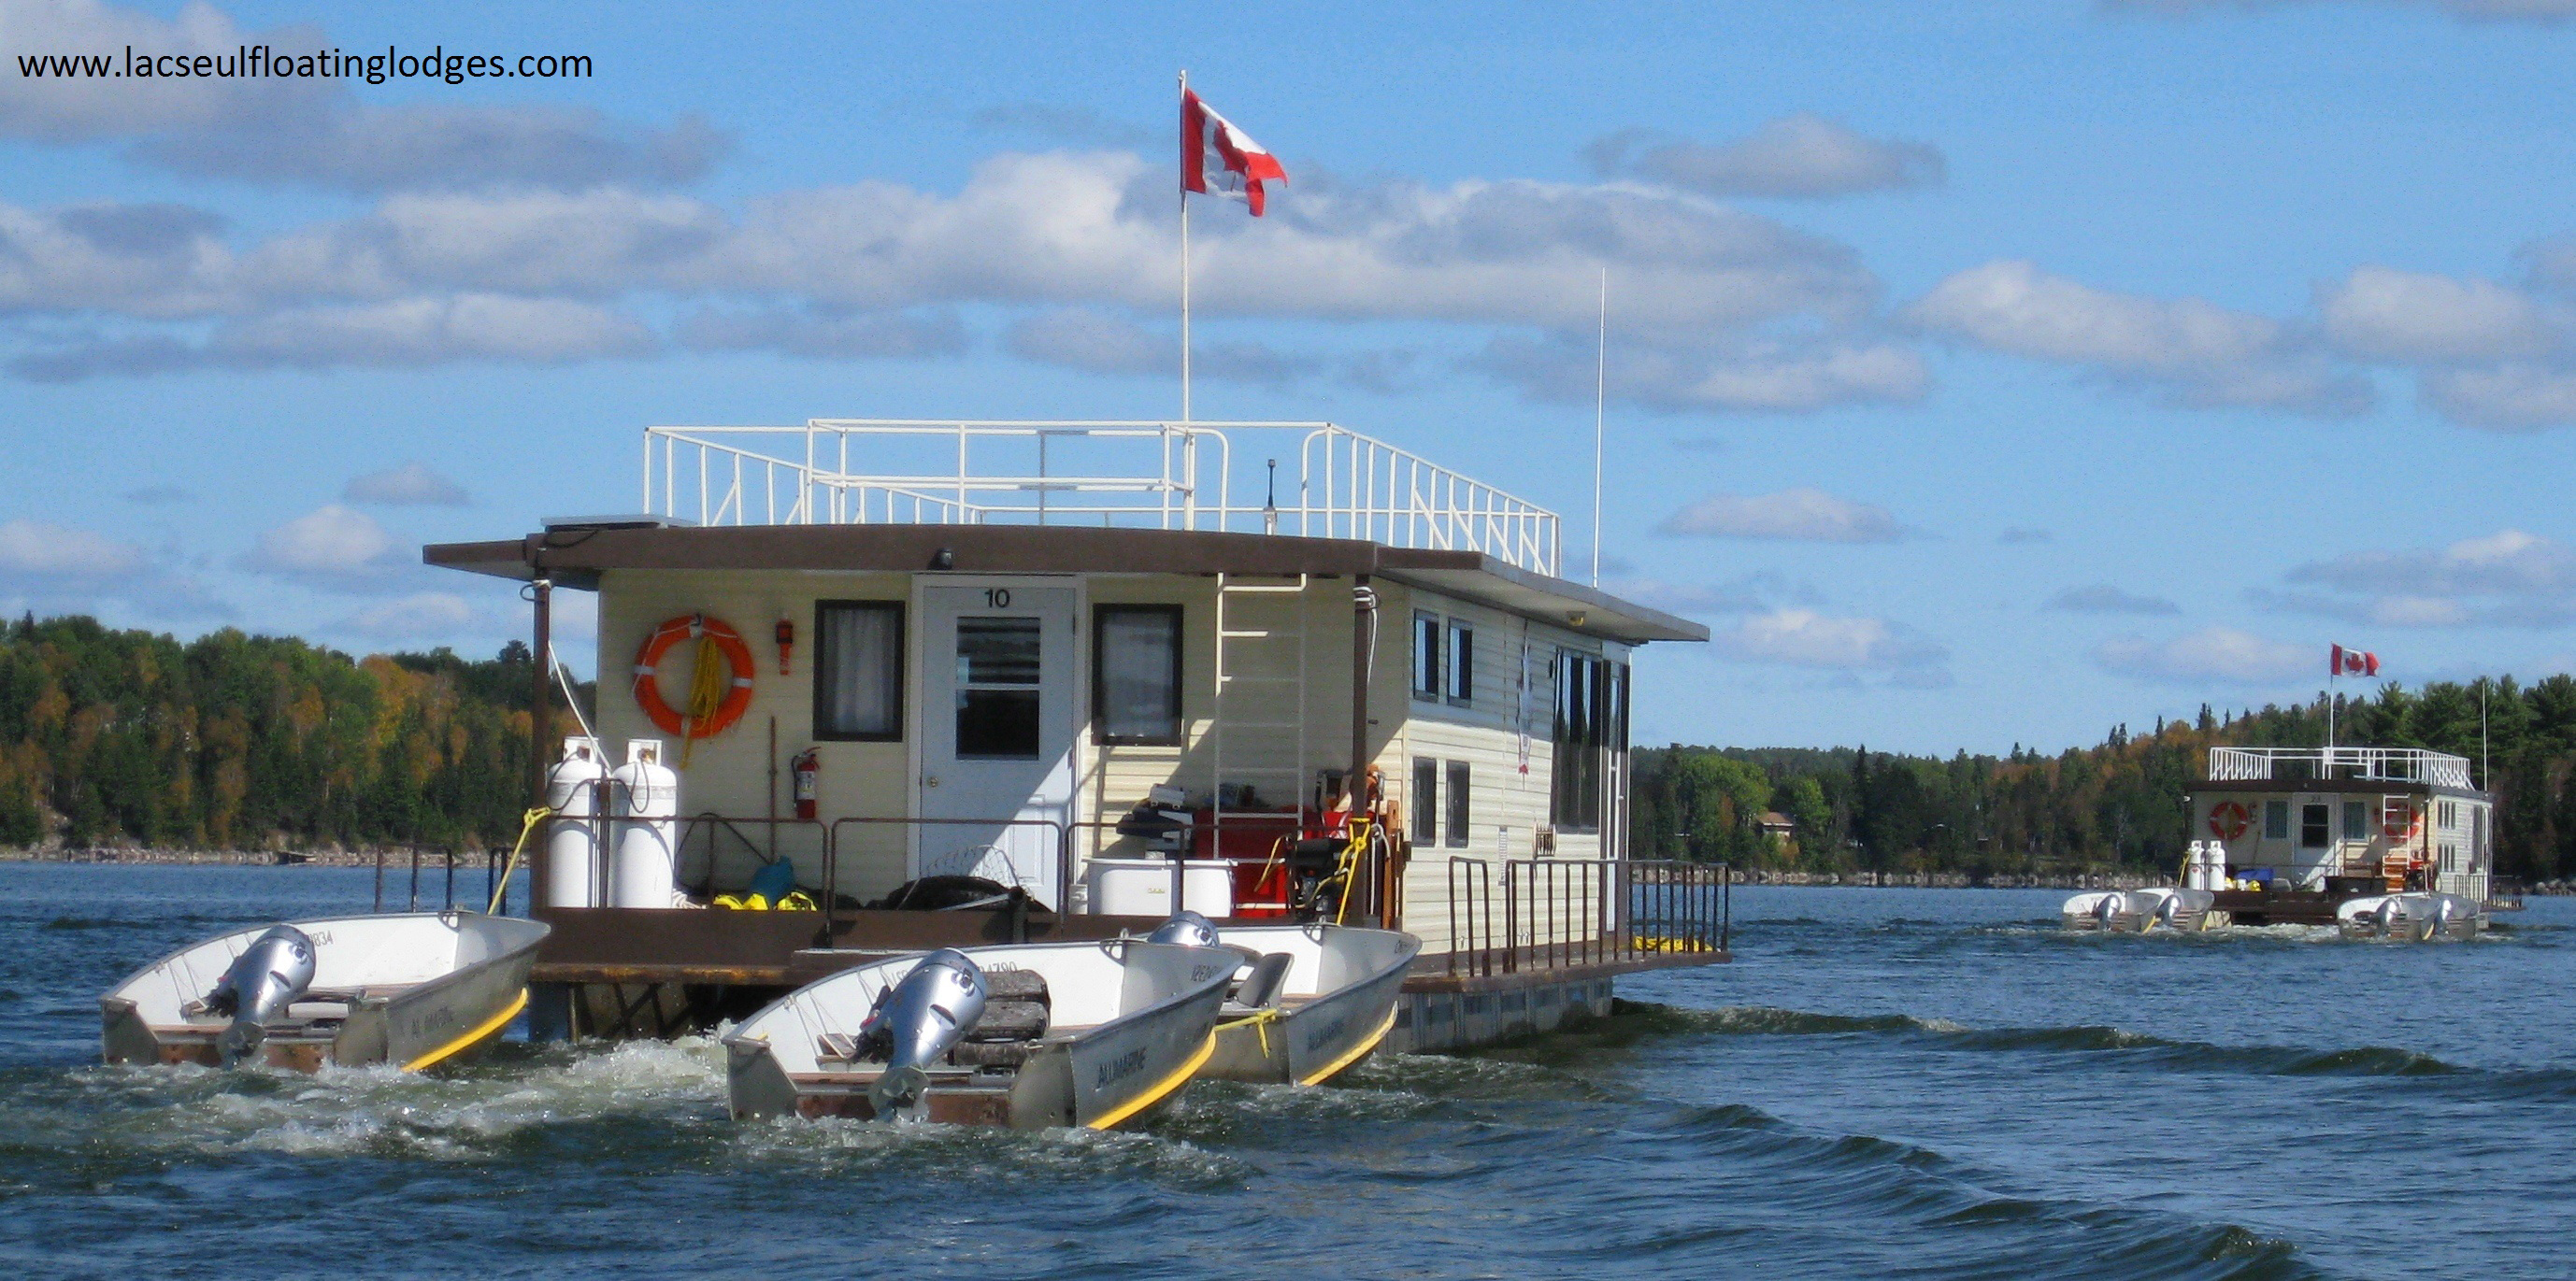 Lac seul floating lodges sunset country ontario canada for Ontario fishing resorts